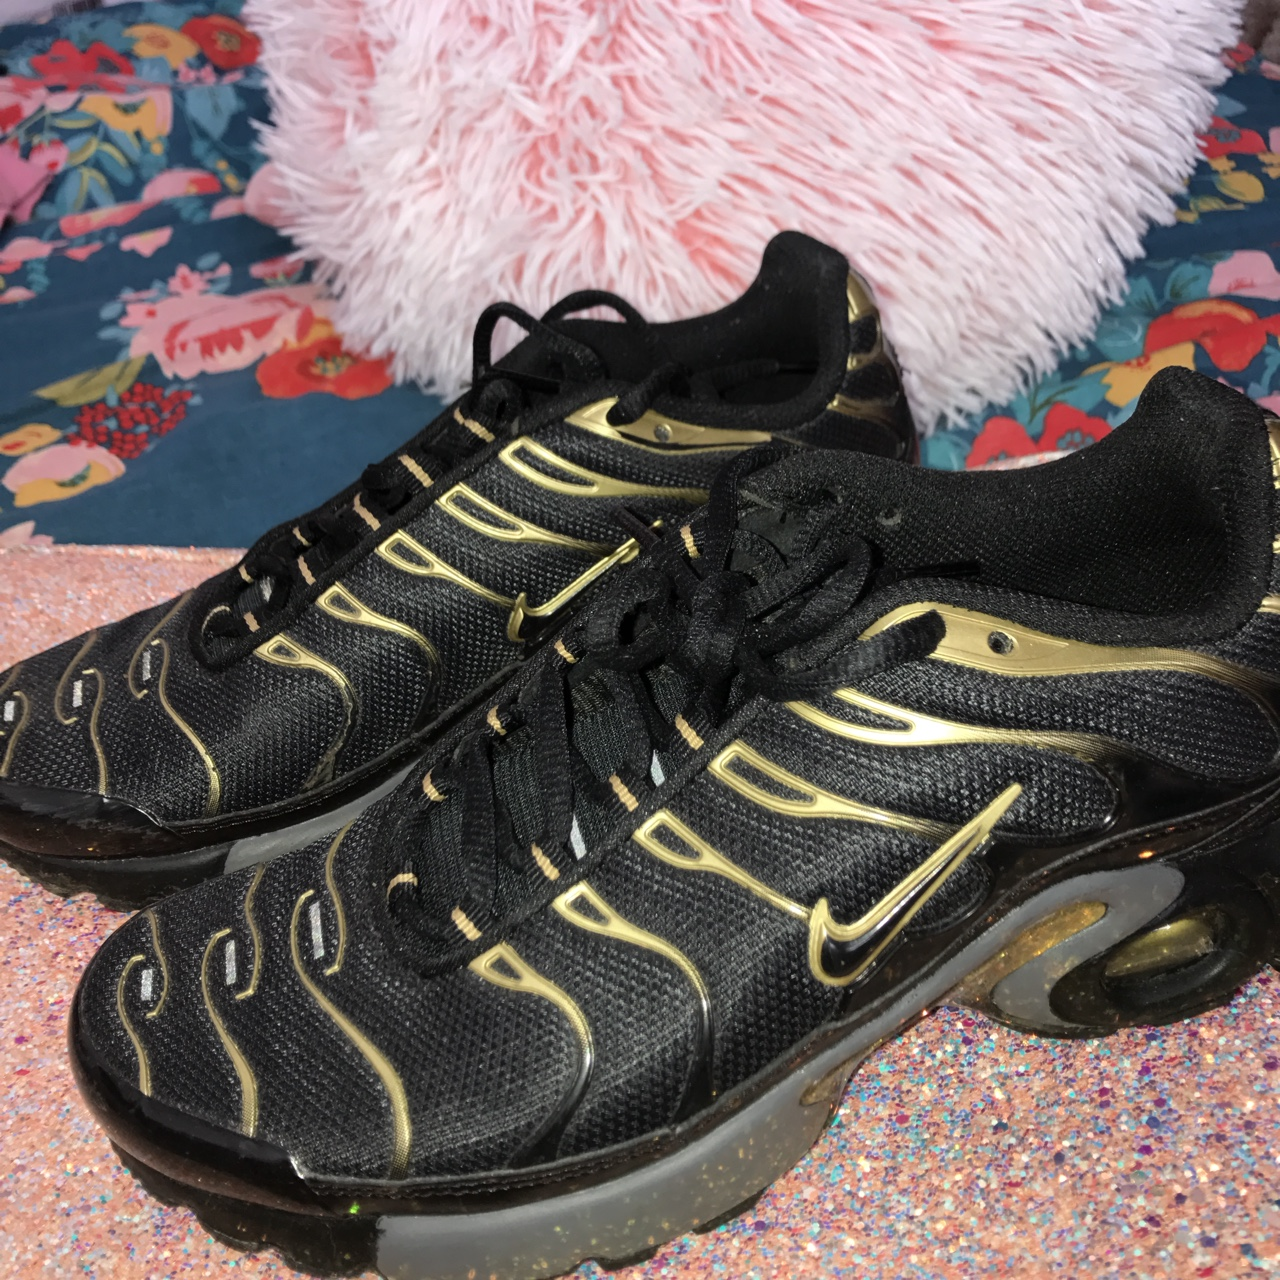 Black and Gold Nike Tns. In very good